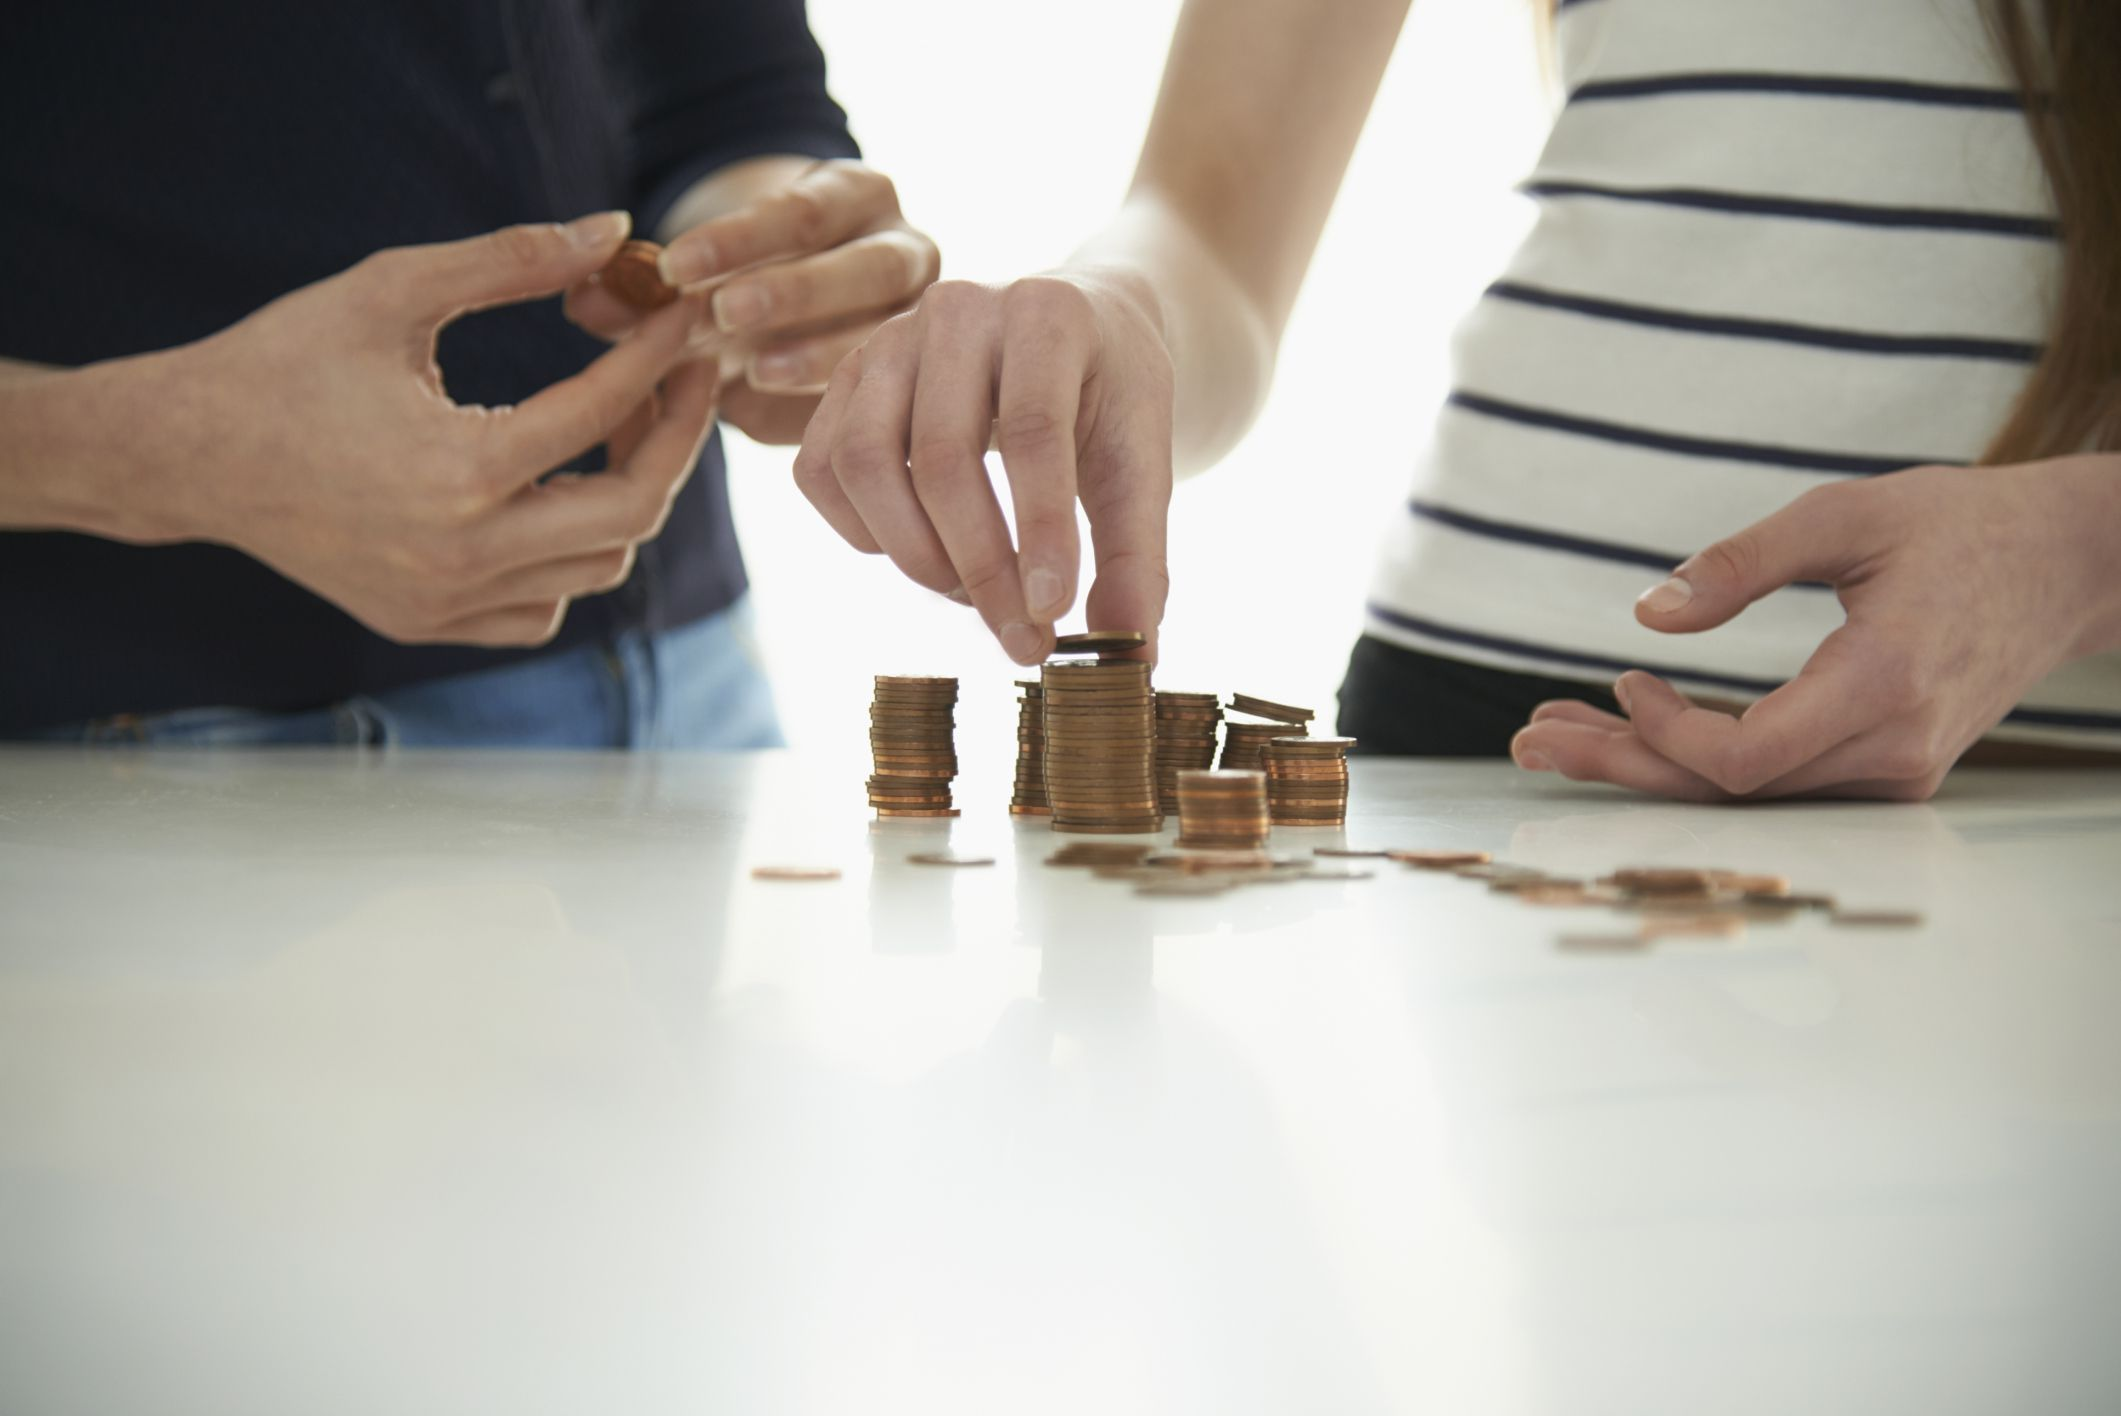 Couple budgeting funds down to the penny and stacking coins on a table top.